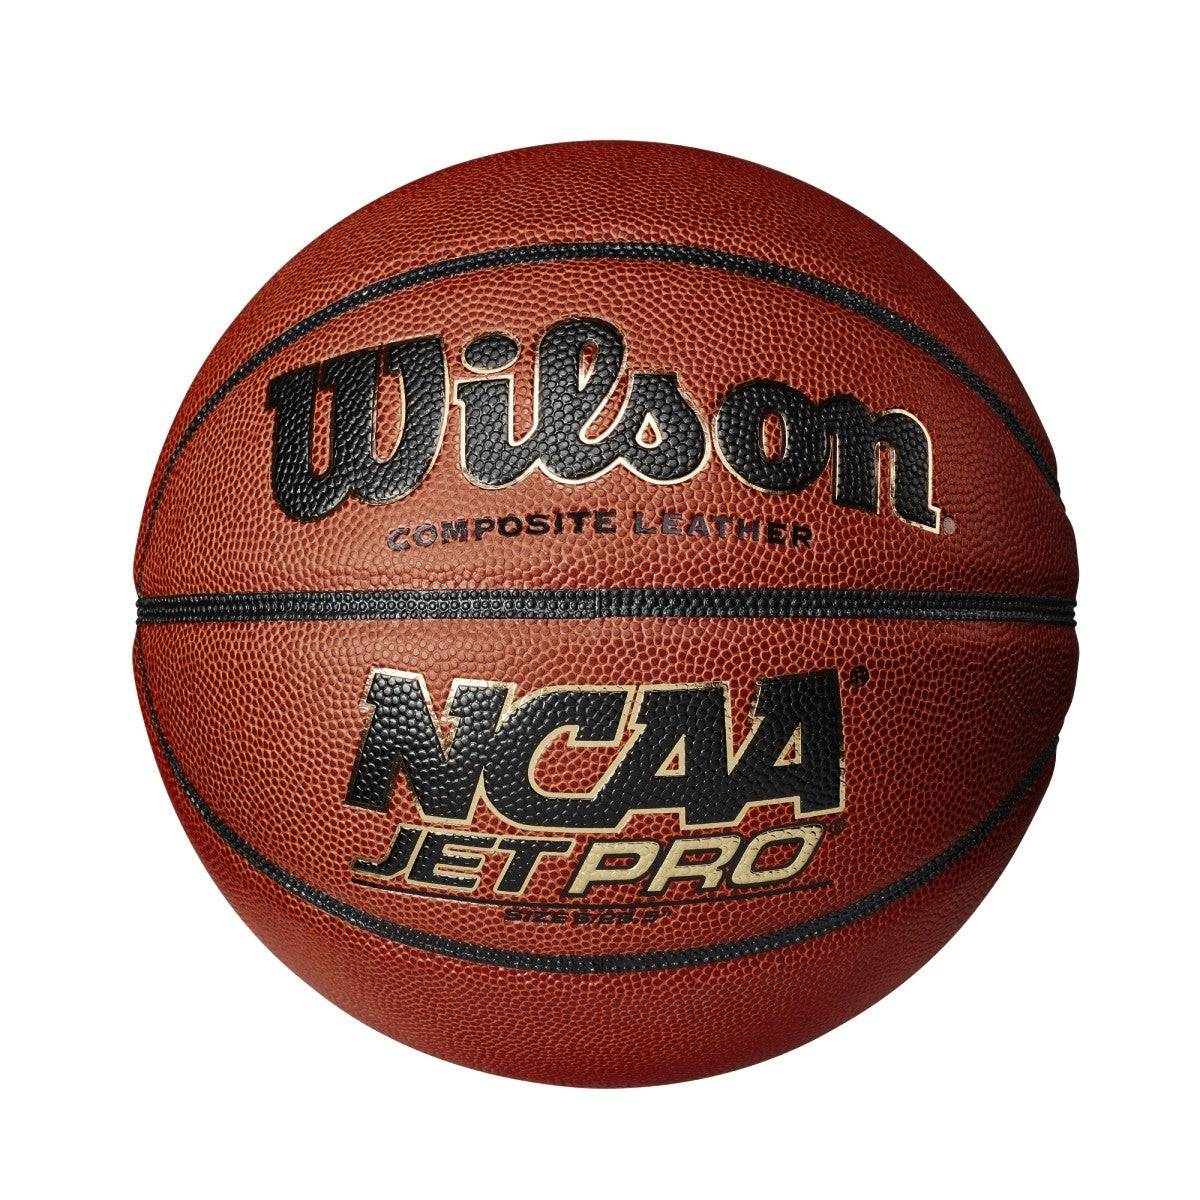 """Wilson NCAA Jet Pro Basketball in Brown - Size: Intermediate - 28.5""""  - Unisex - Brown - Size: Intermediate - 28.5"""""""